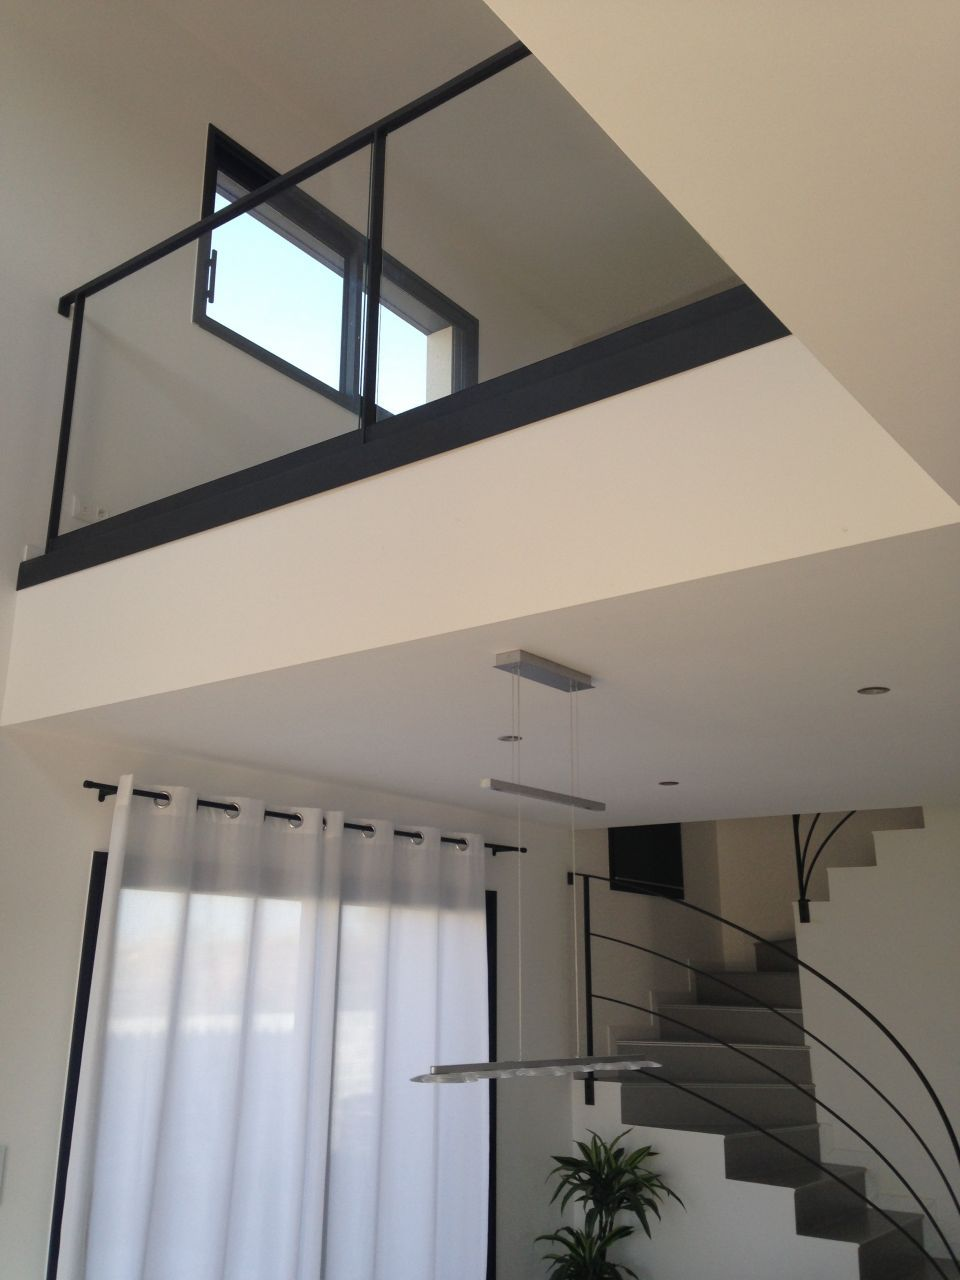 gardes corps du vide sur s jour pos s stairs pinterest escaliers s jour et vide. Black Bedroom Furniture Sets. Home Design Ideas